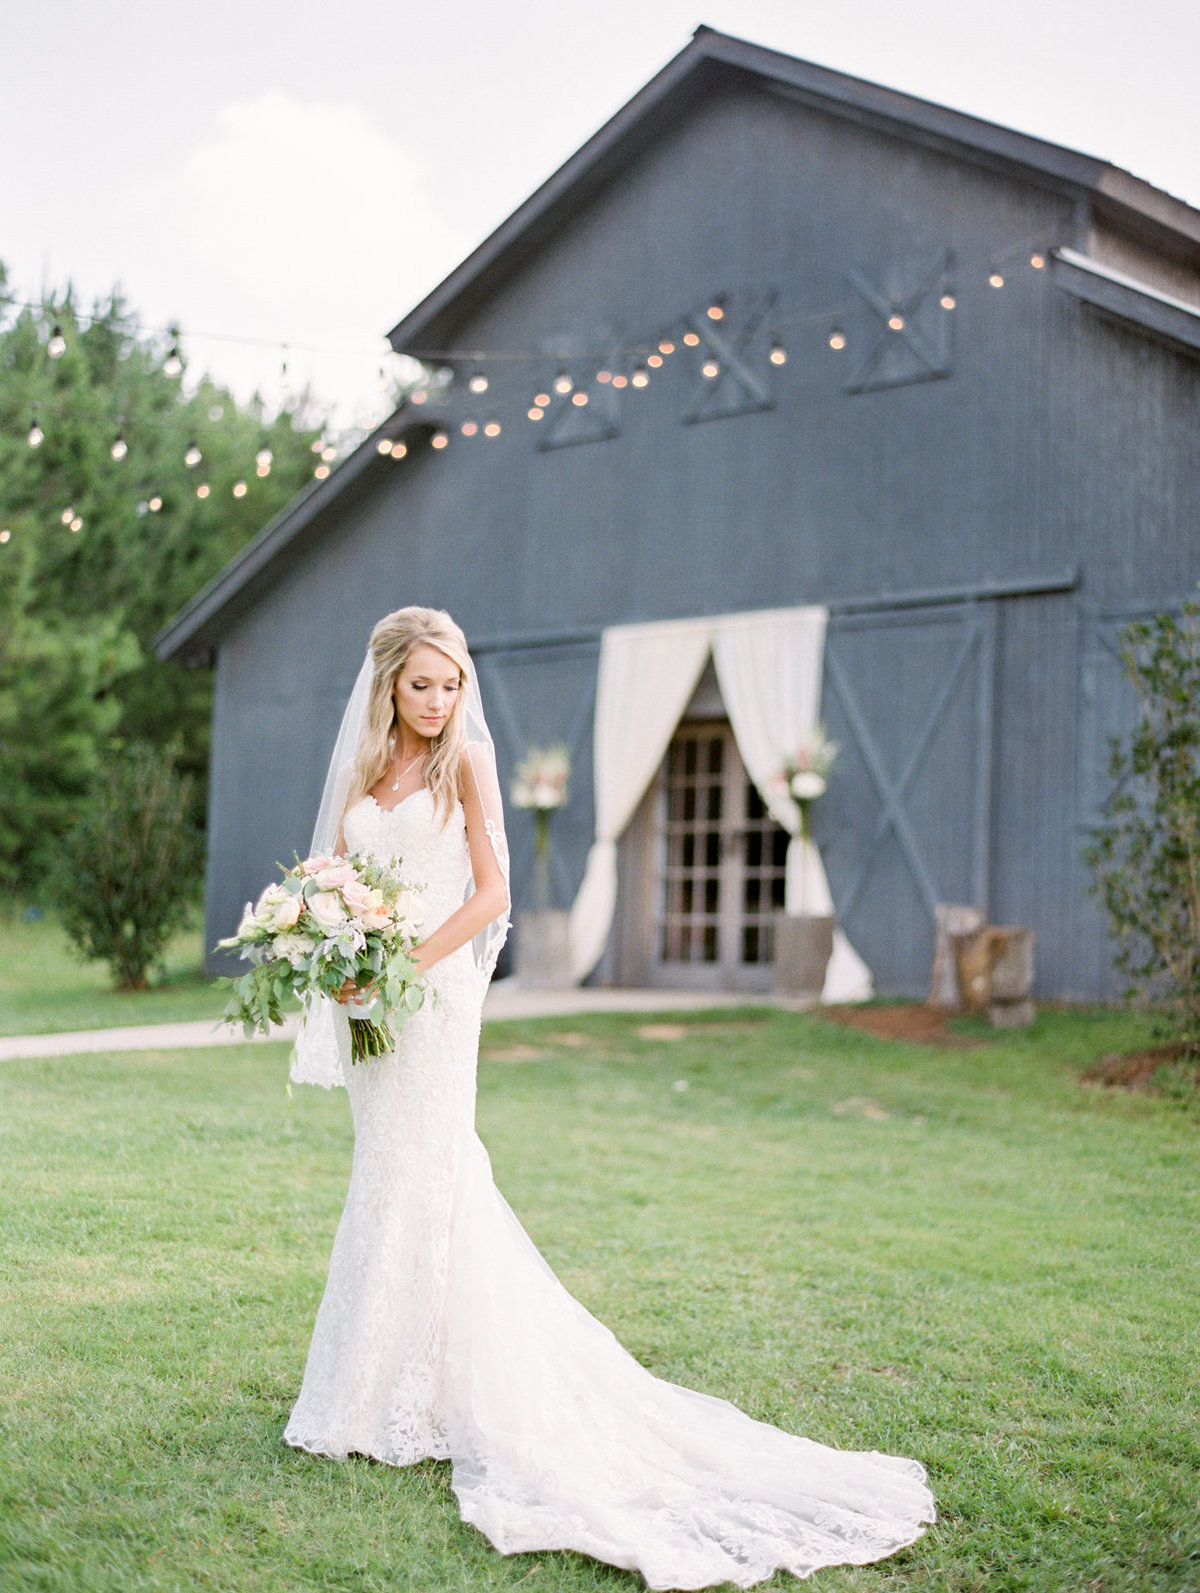 Sydney & William_Lindsay Ott Photography-116